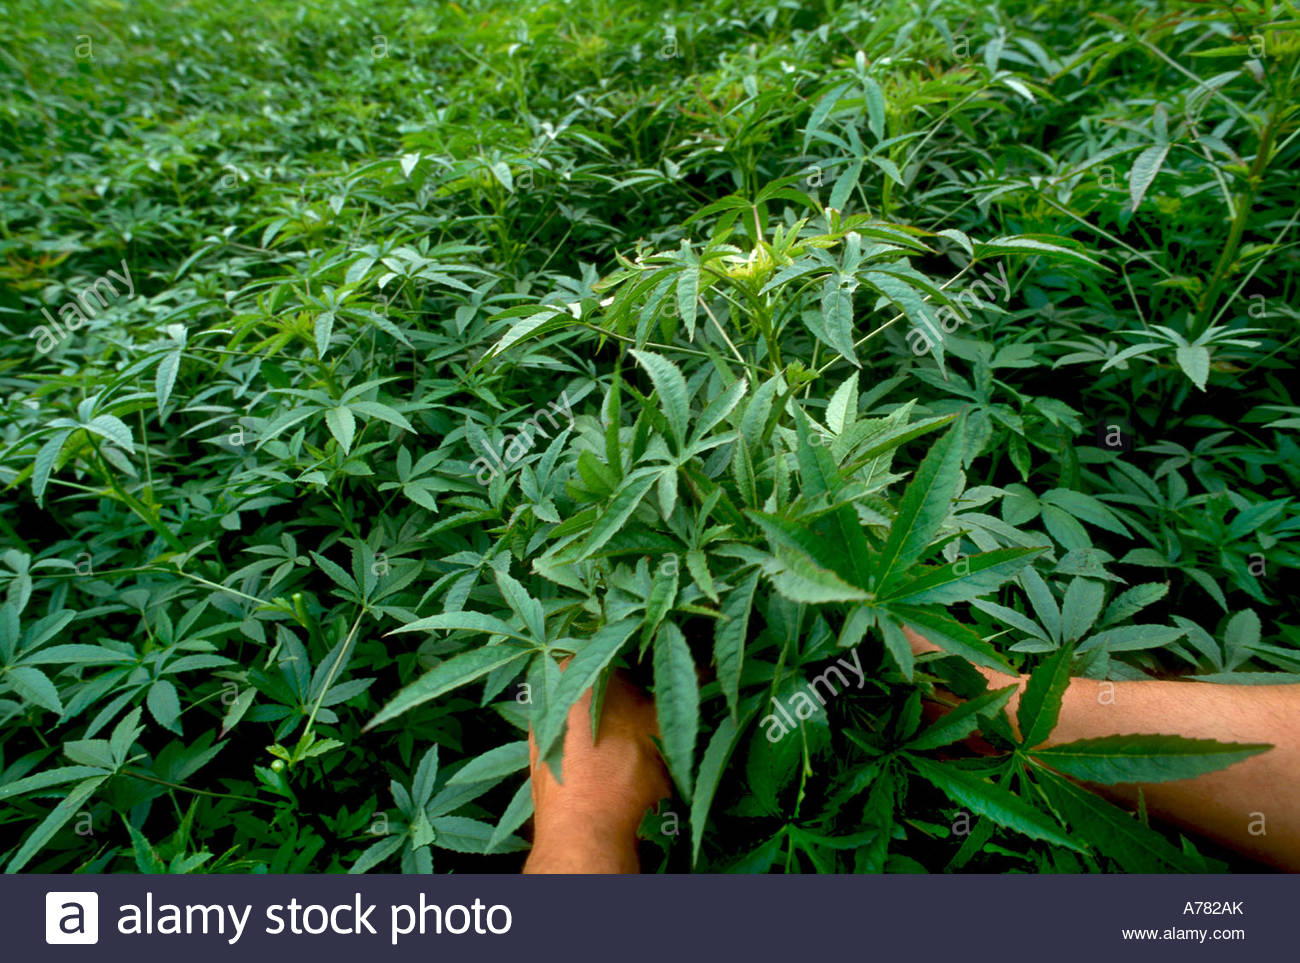 Close up of a person s hand picking Kenaf plants - Stock Image